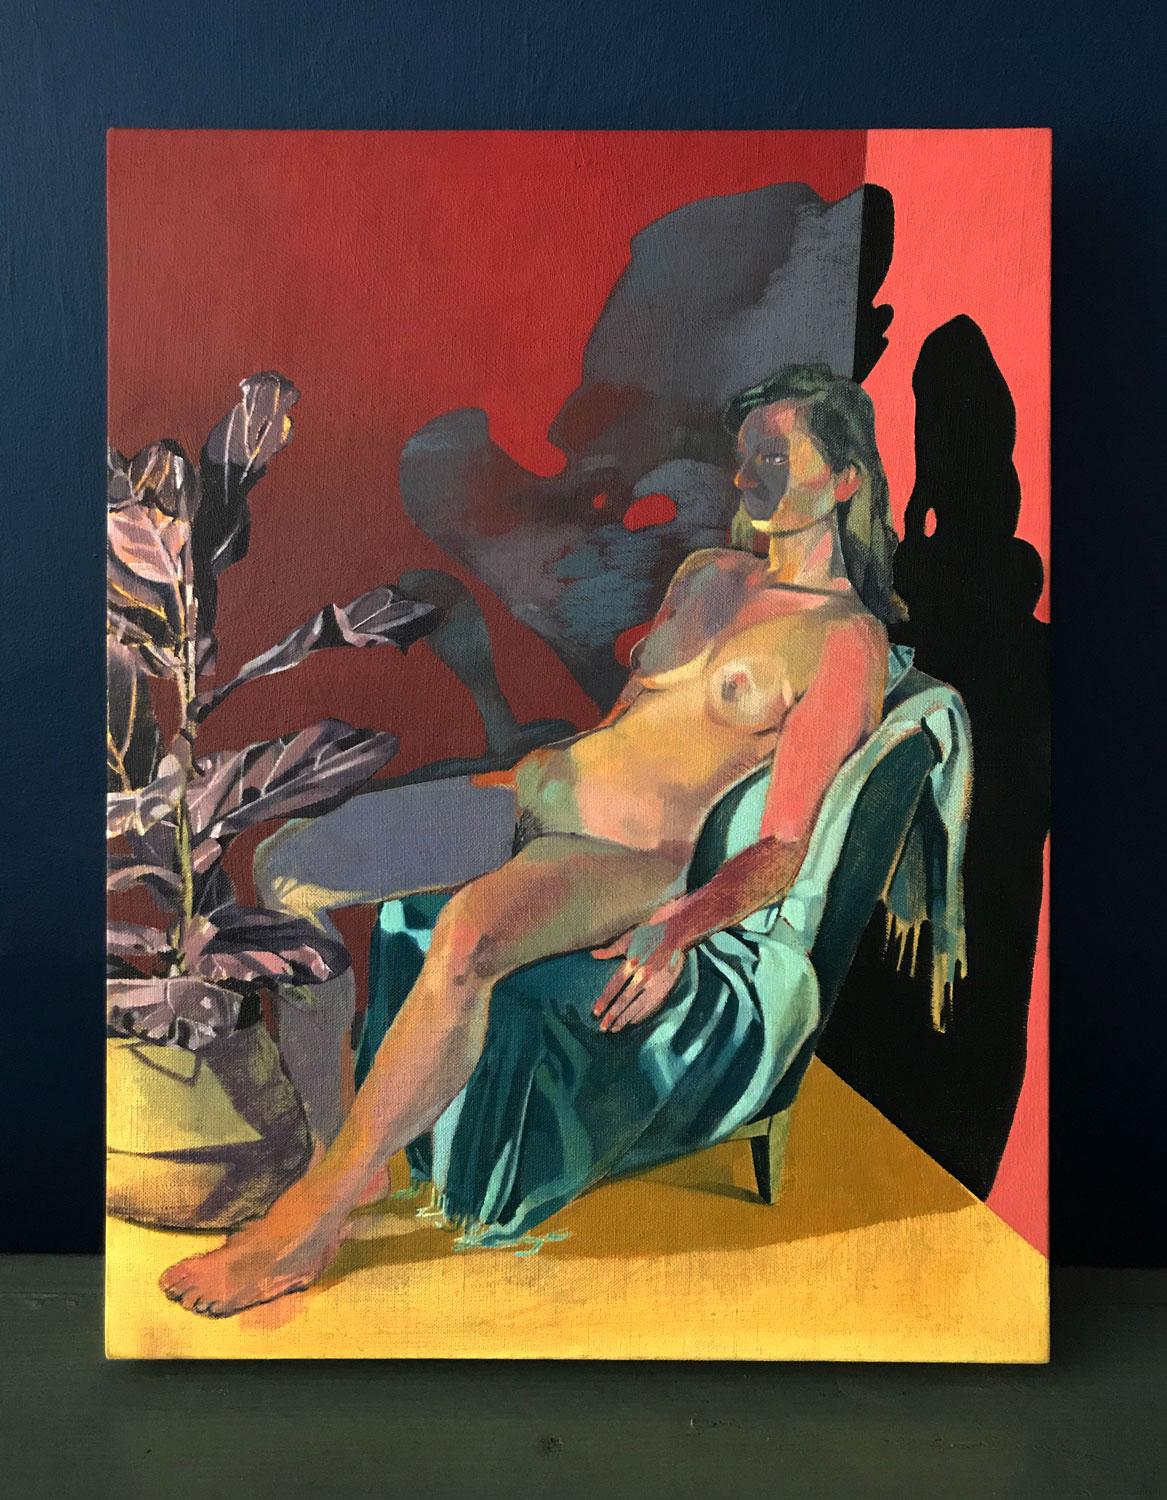 Hester-Finch-Nude-Collector.jpg